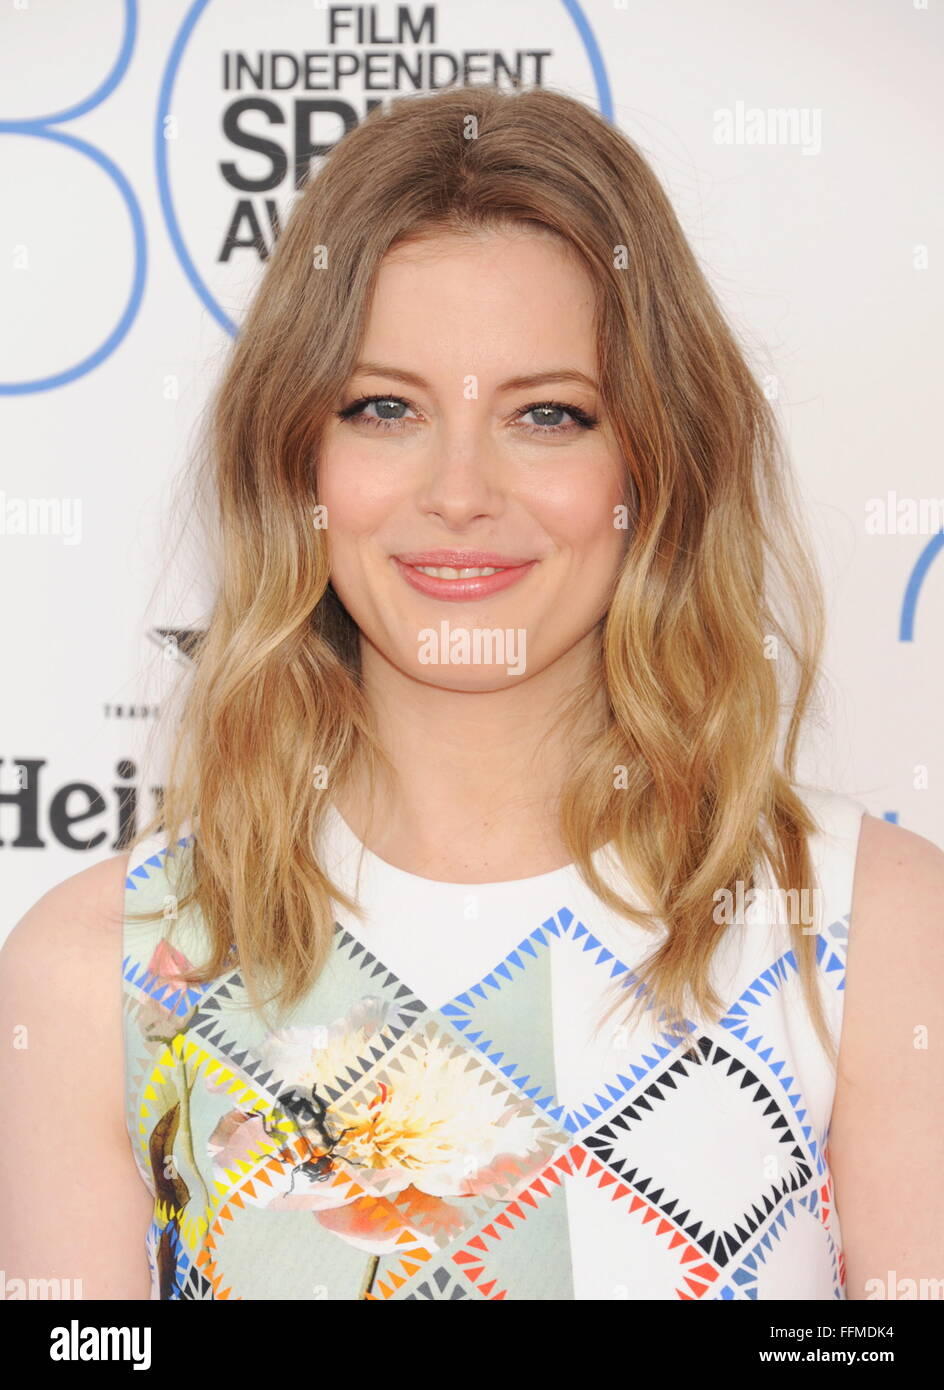 Actress Gillian Jacobs arrives at the 2015 Film Independent Spirit Awards on February 21, 2015 in Santa Monica, - Stock Image